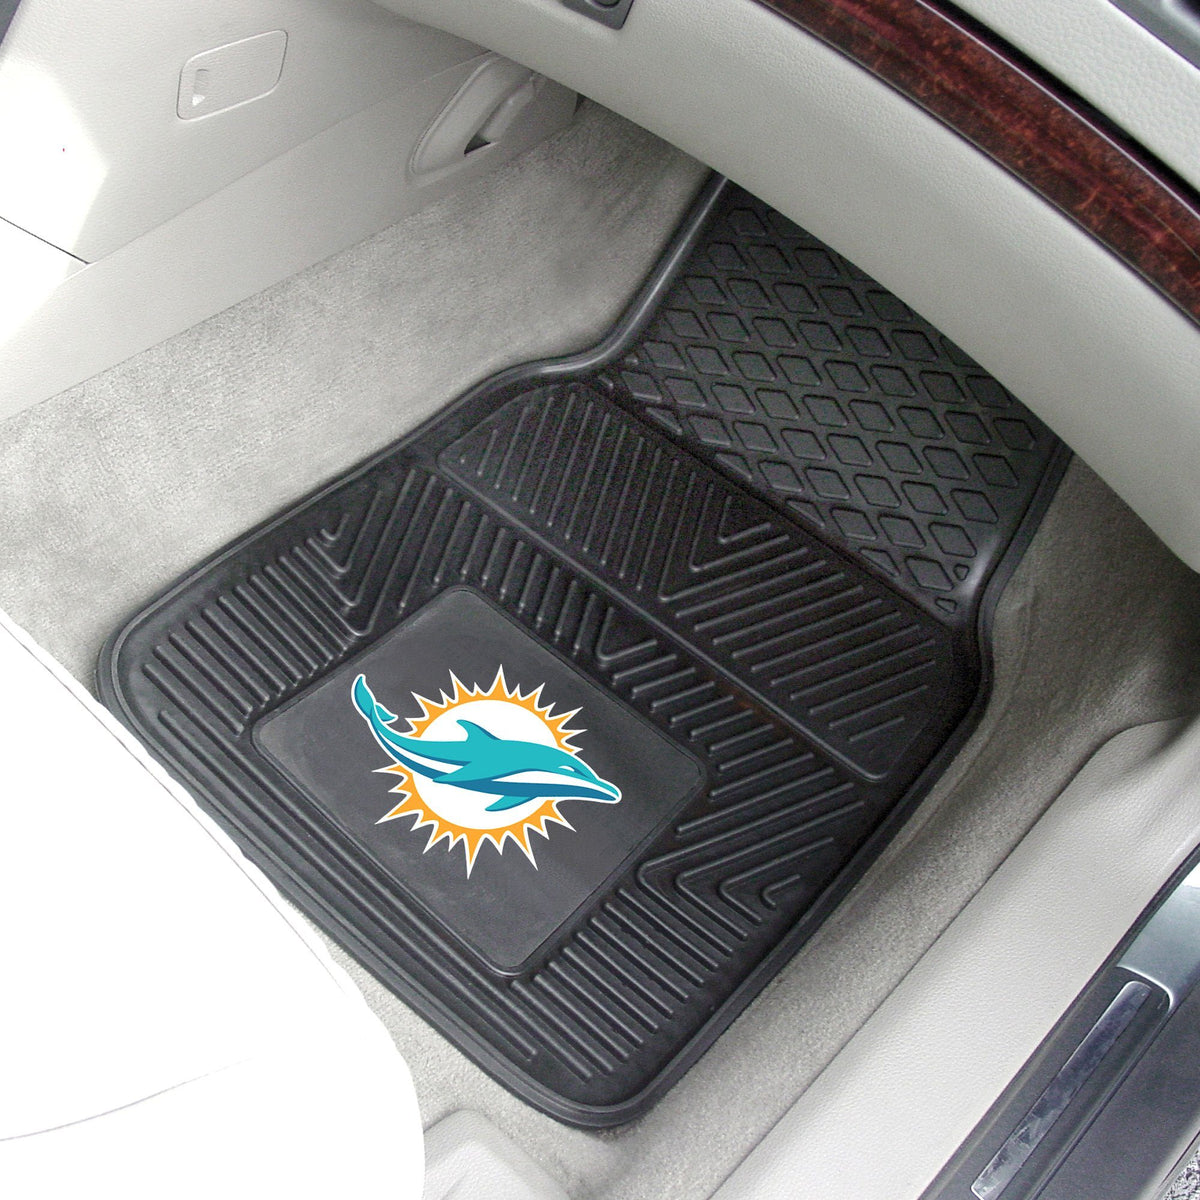 NFL - 2-pc Vinyl Car Mat Set NFL Mats, Front Car Mats, 2-pc Vinyl Car Mat Set, NFL, Auto Fan Mats Miami Dolphins